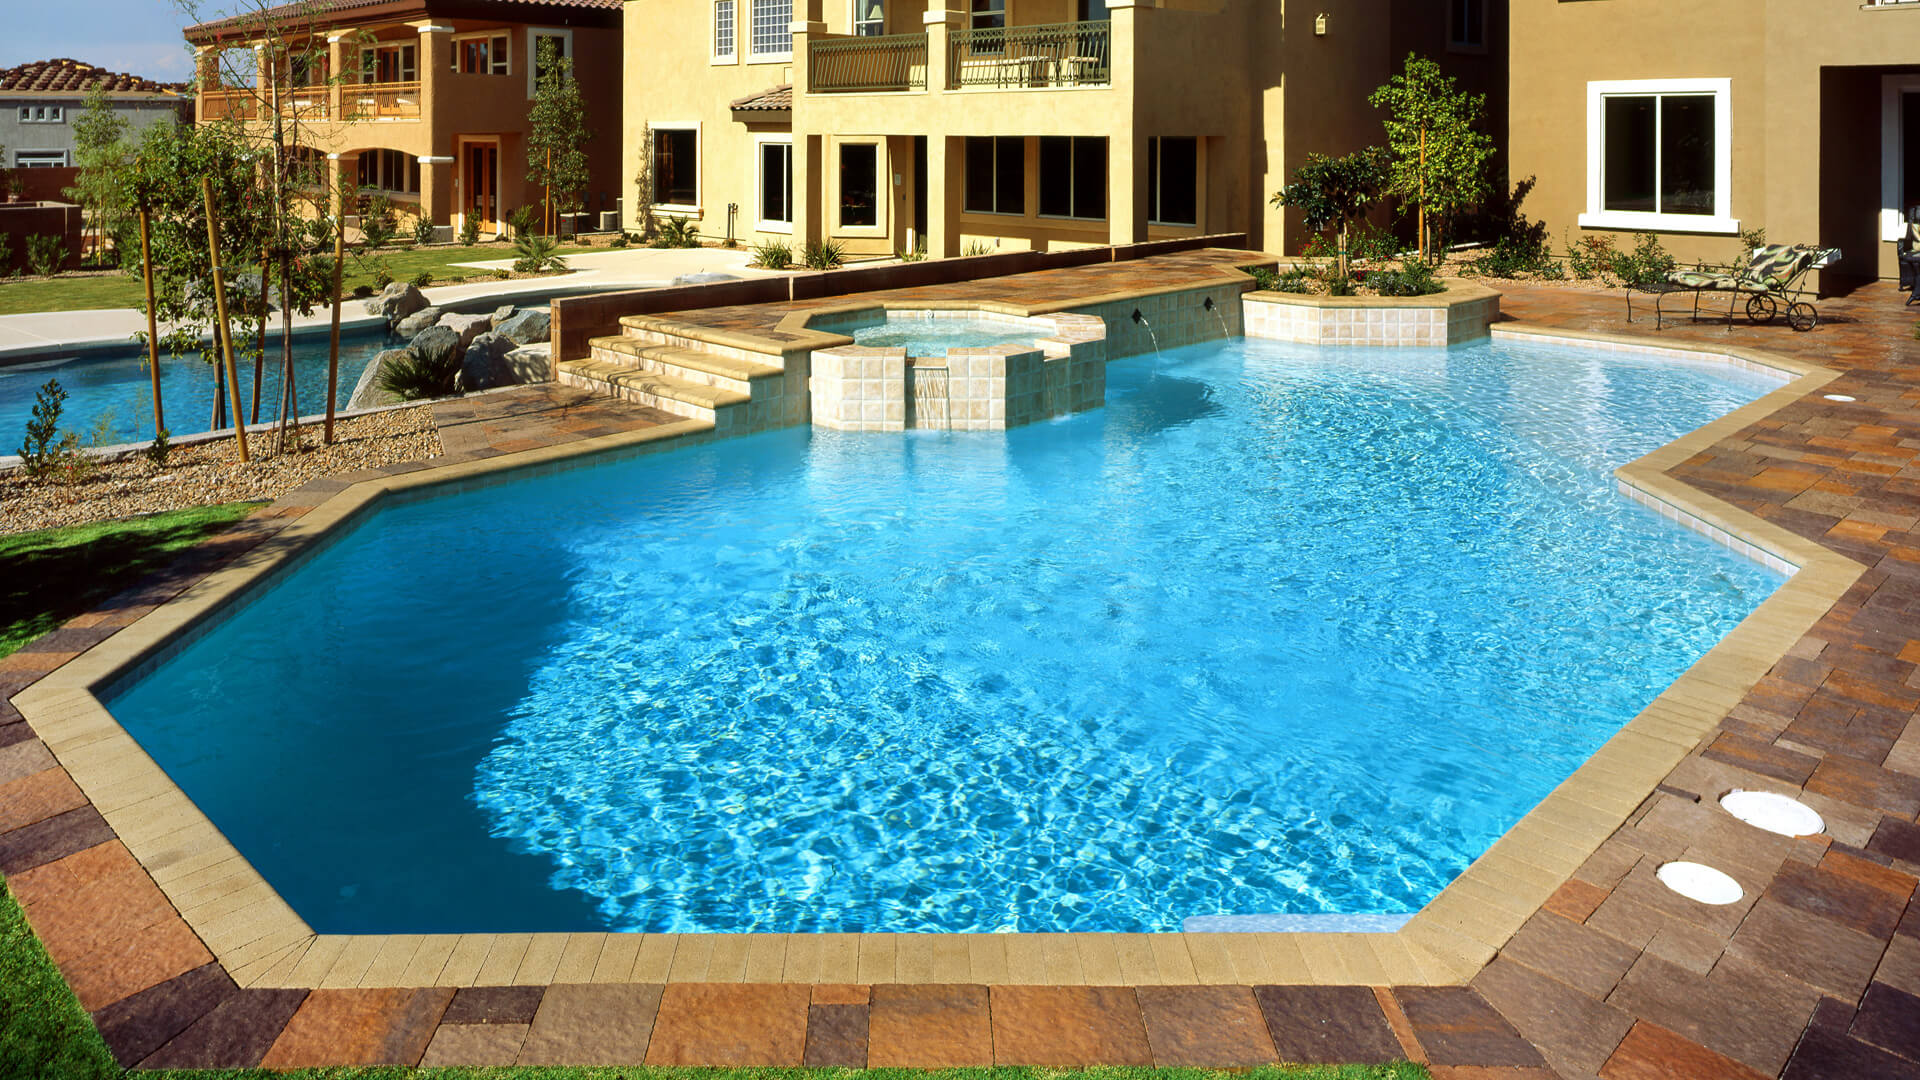 Modern Polygonal Shaped Custom Swimming Pool Design - Las Vegas, Nevada